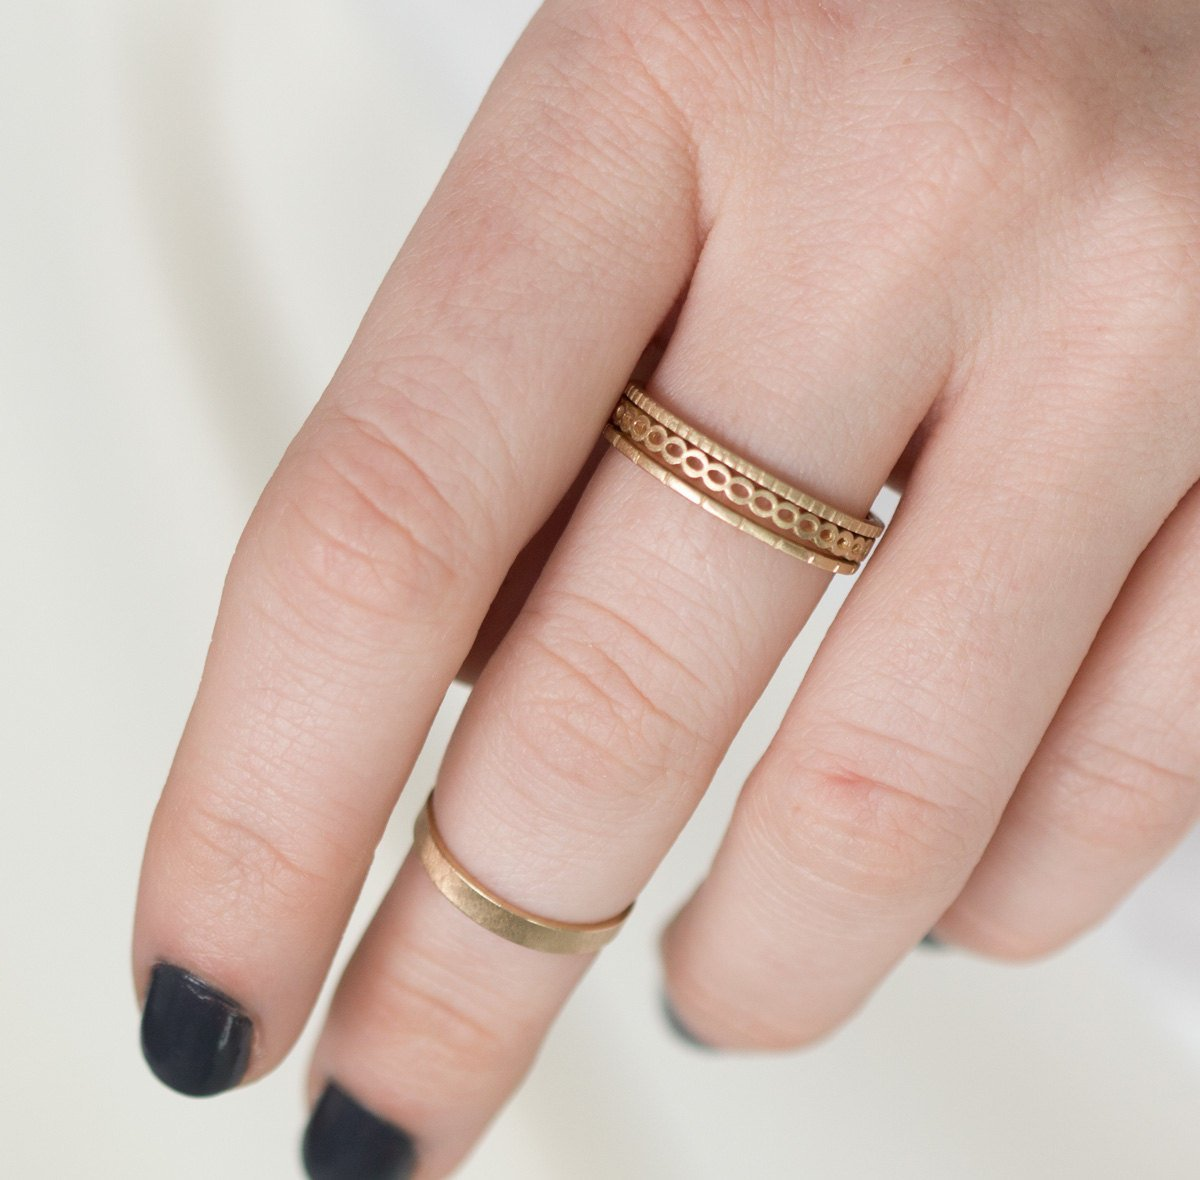 Amazon.com: Open Bead Stacking Ring with Open Scalloped Edges: Handmade